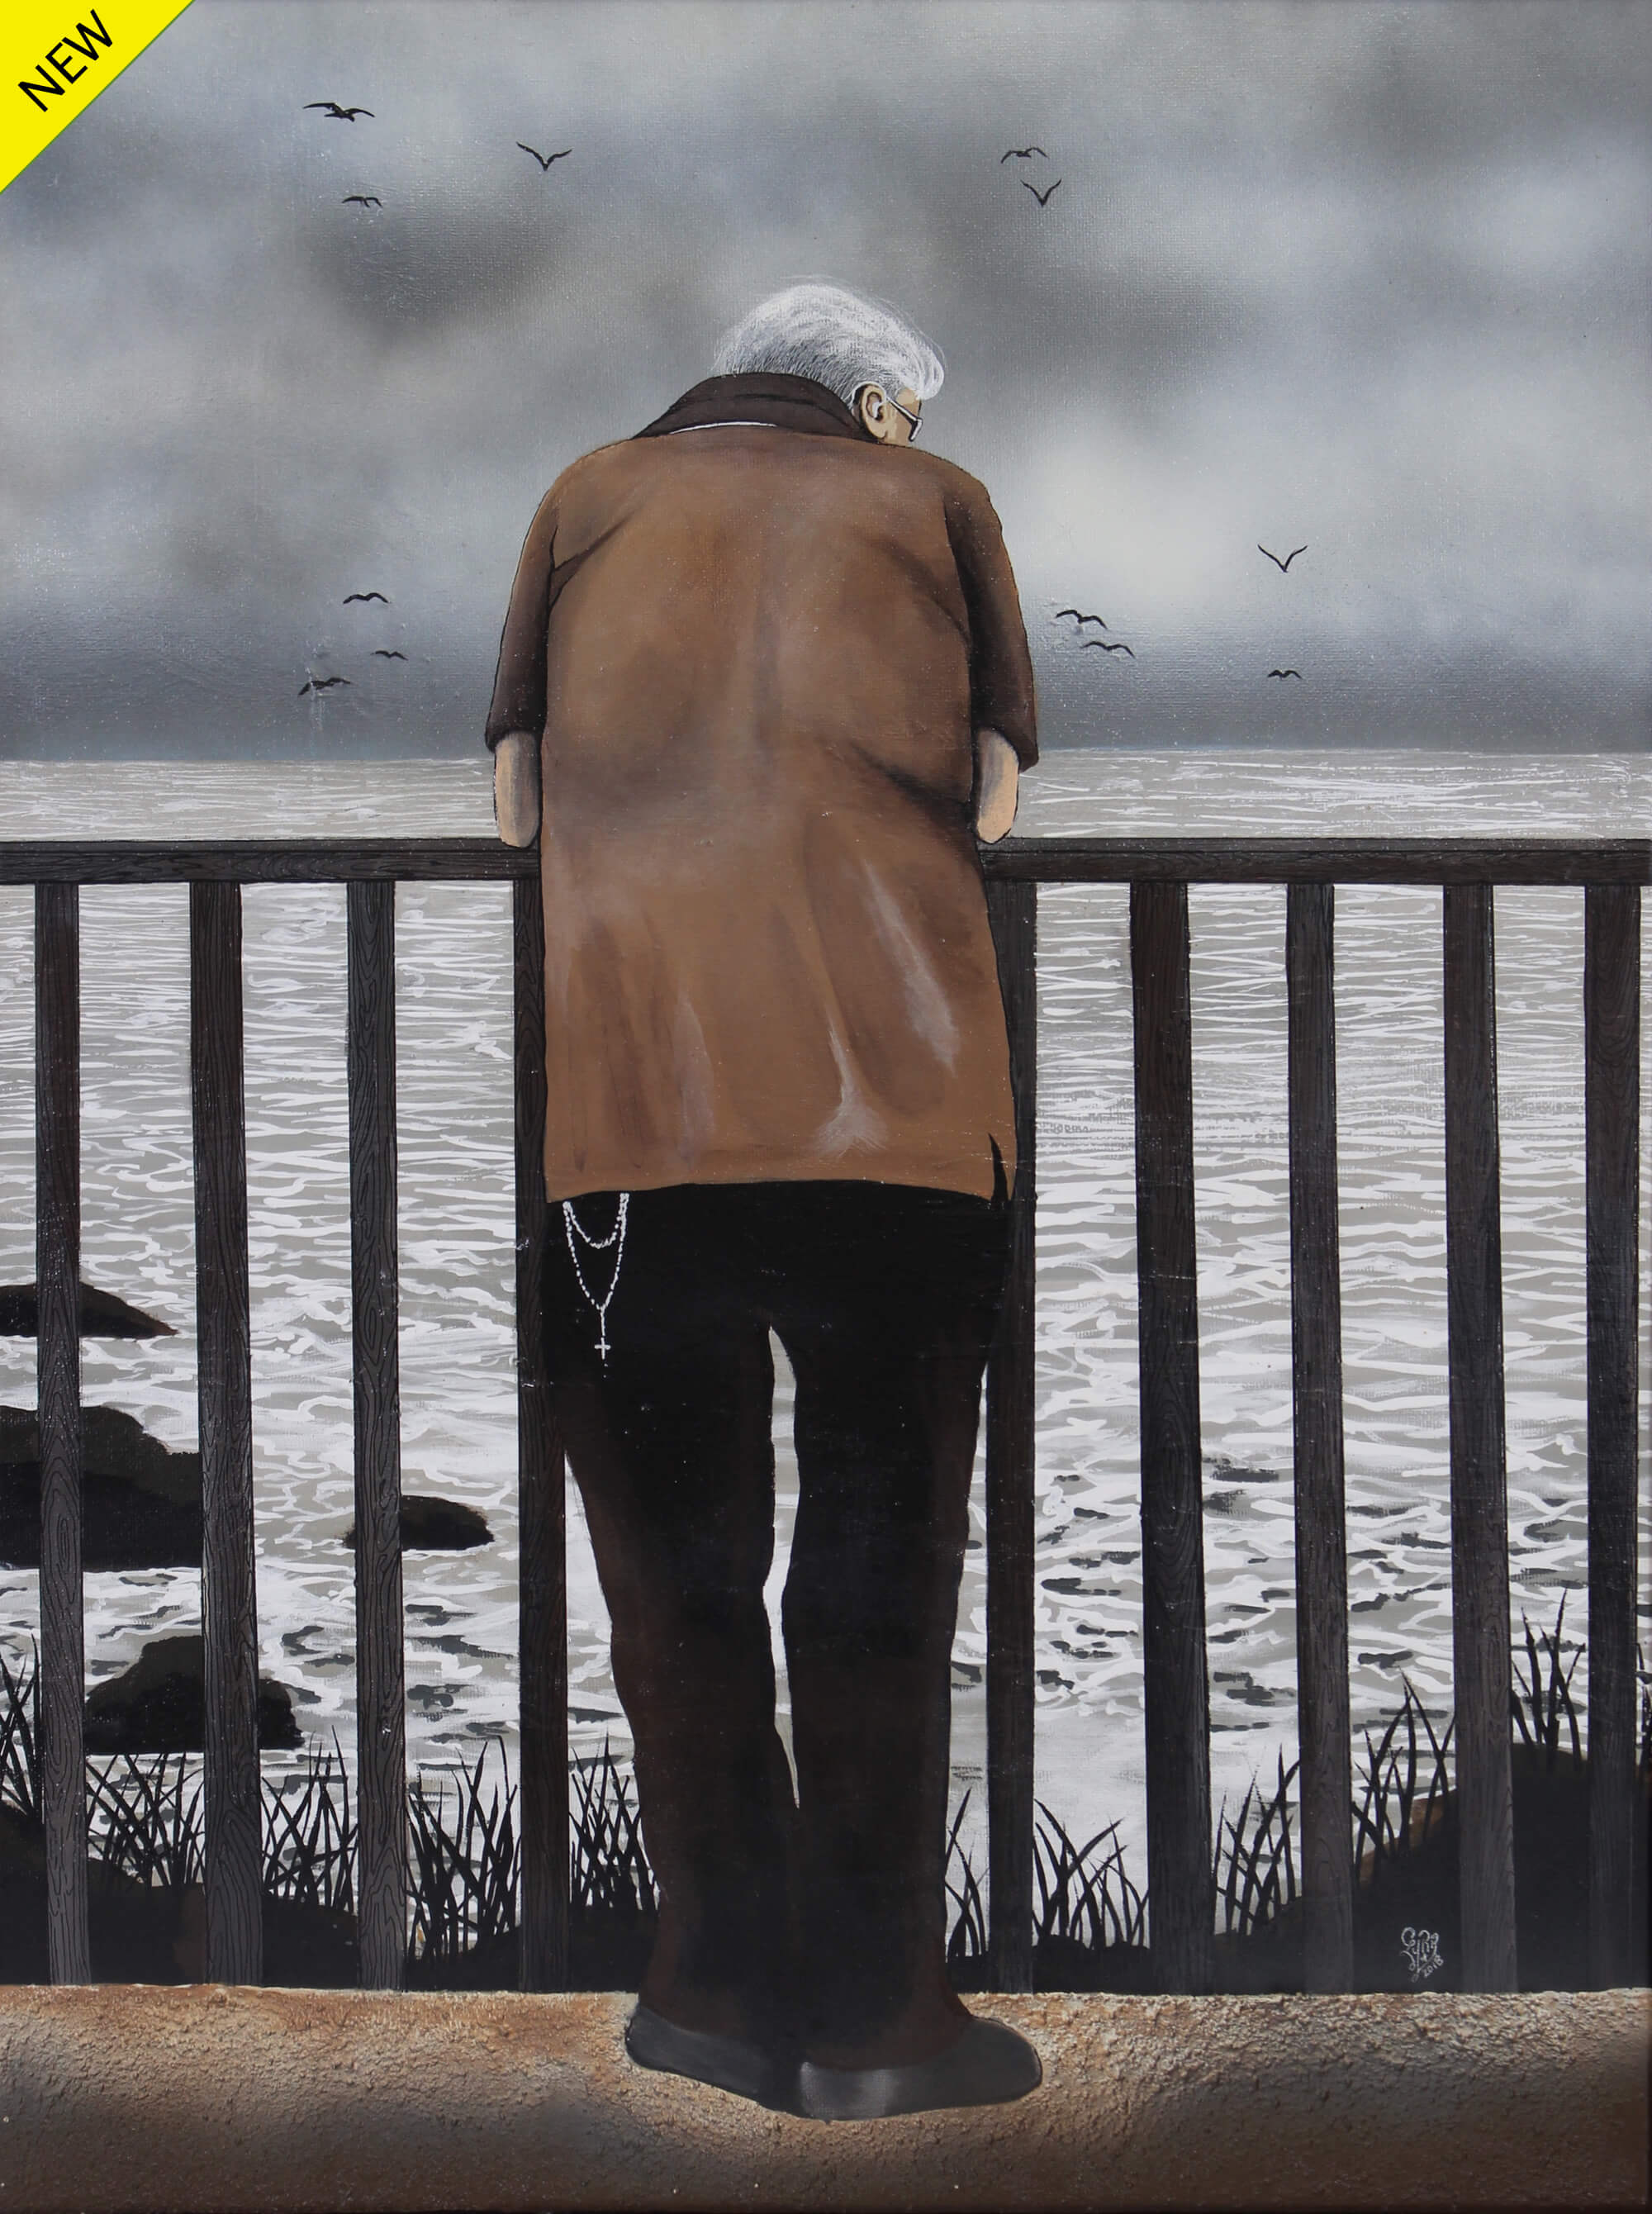 Painting of a back view of a lonely old man with arms resting on a handrail, watching a tempestuous gray sea on a gray cloudy day by Laurencia Victoria.